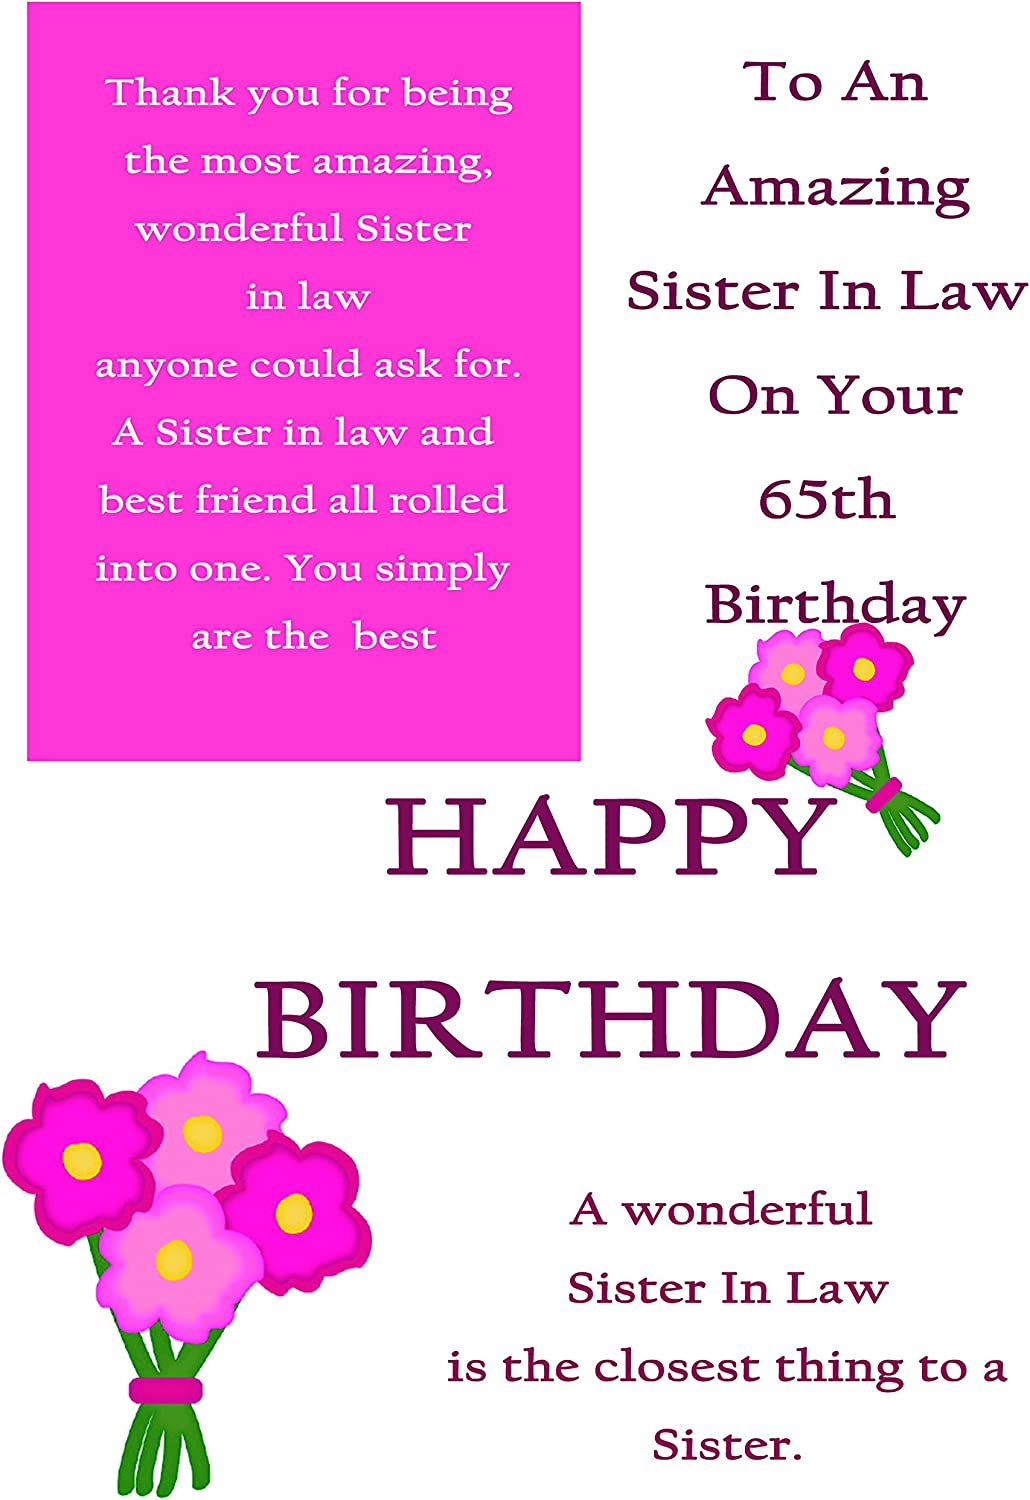 Sister In Law 65th Birthday Card With Removable Laminate Amazon Co Uk Office Products